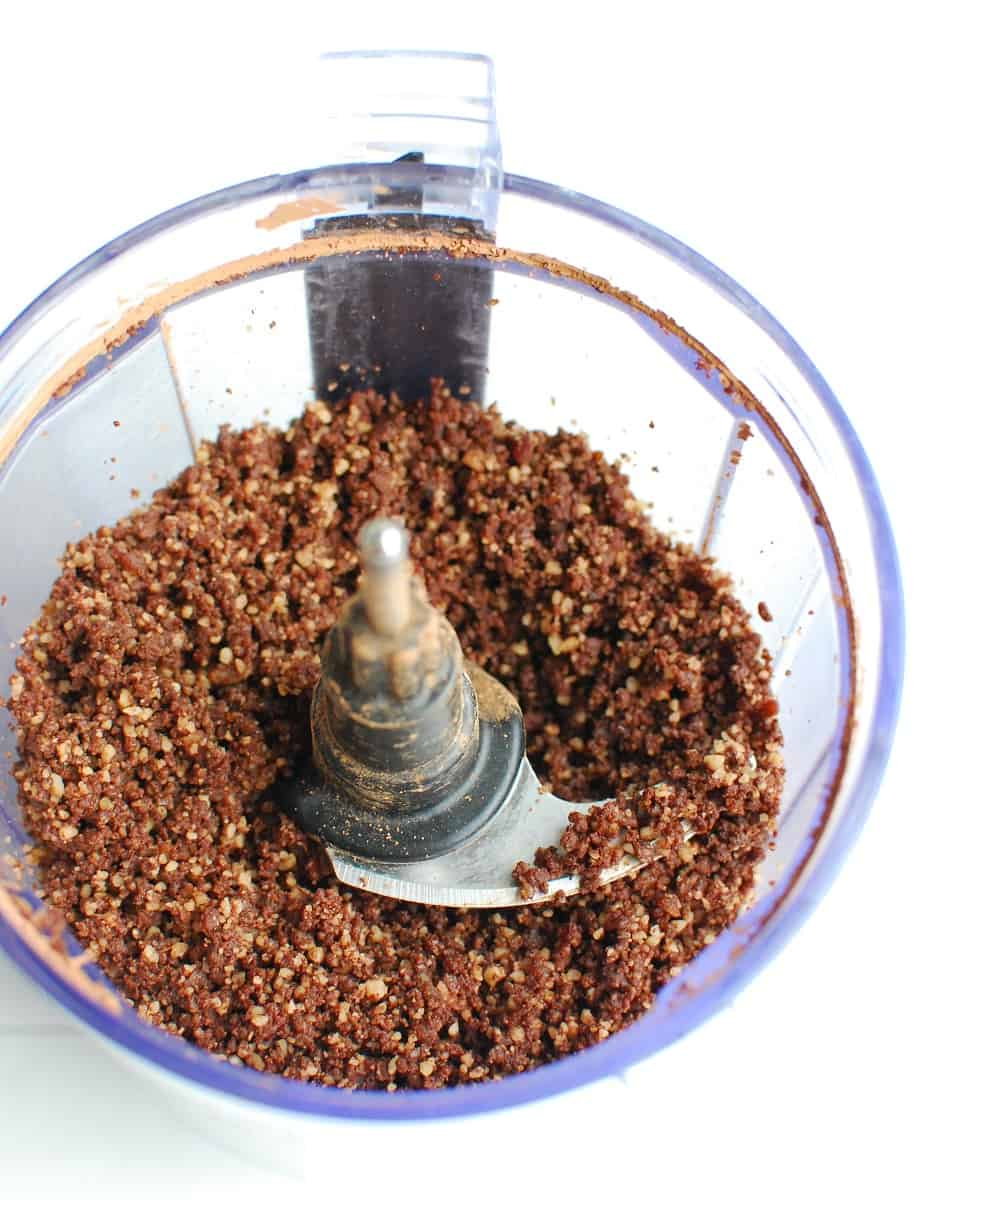 dates, nuts, and cocoa powder that has been processed together in a food processor